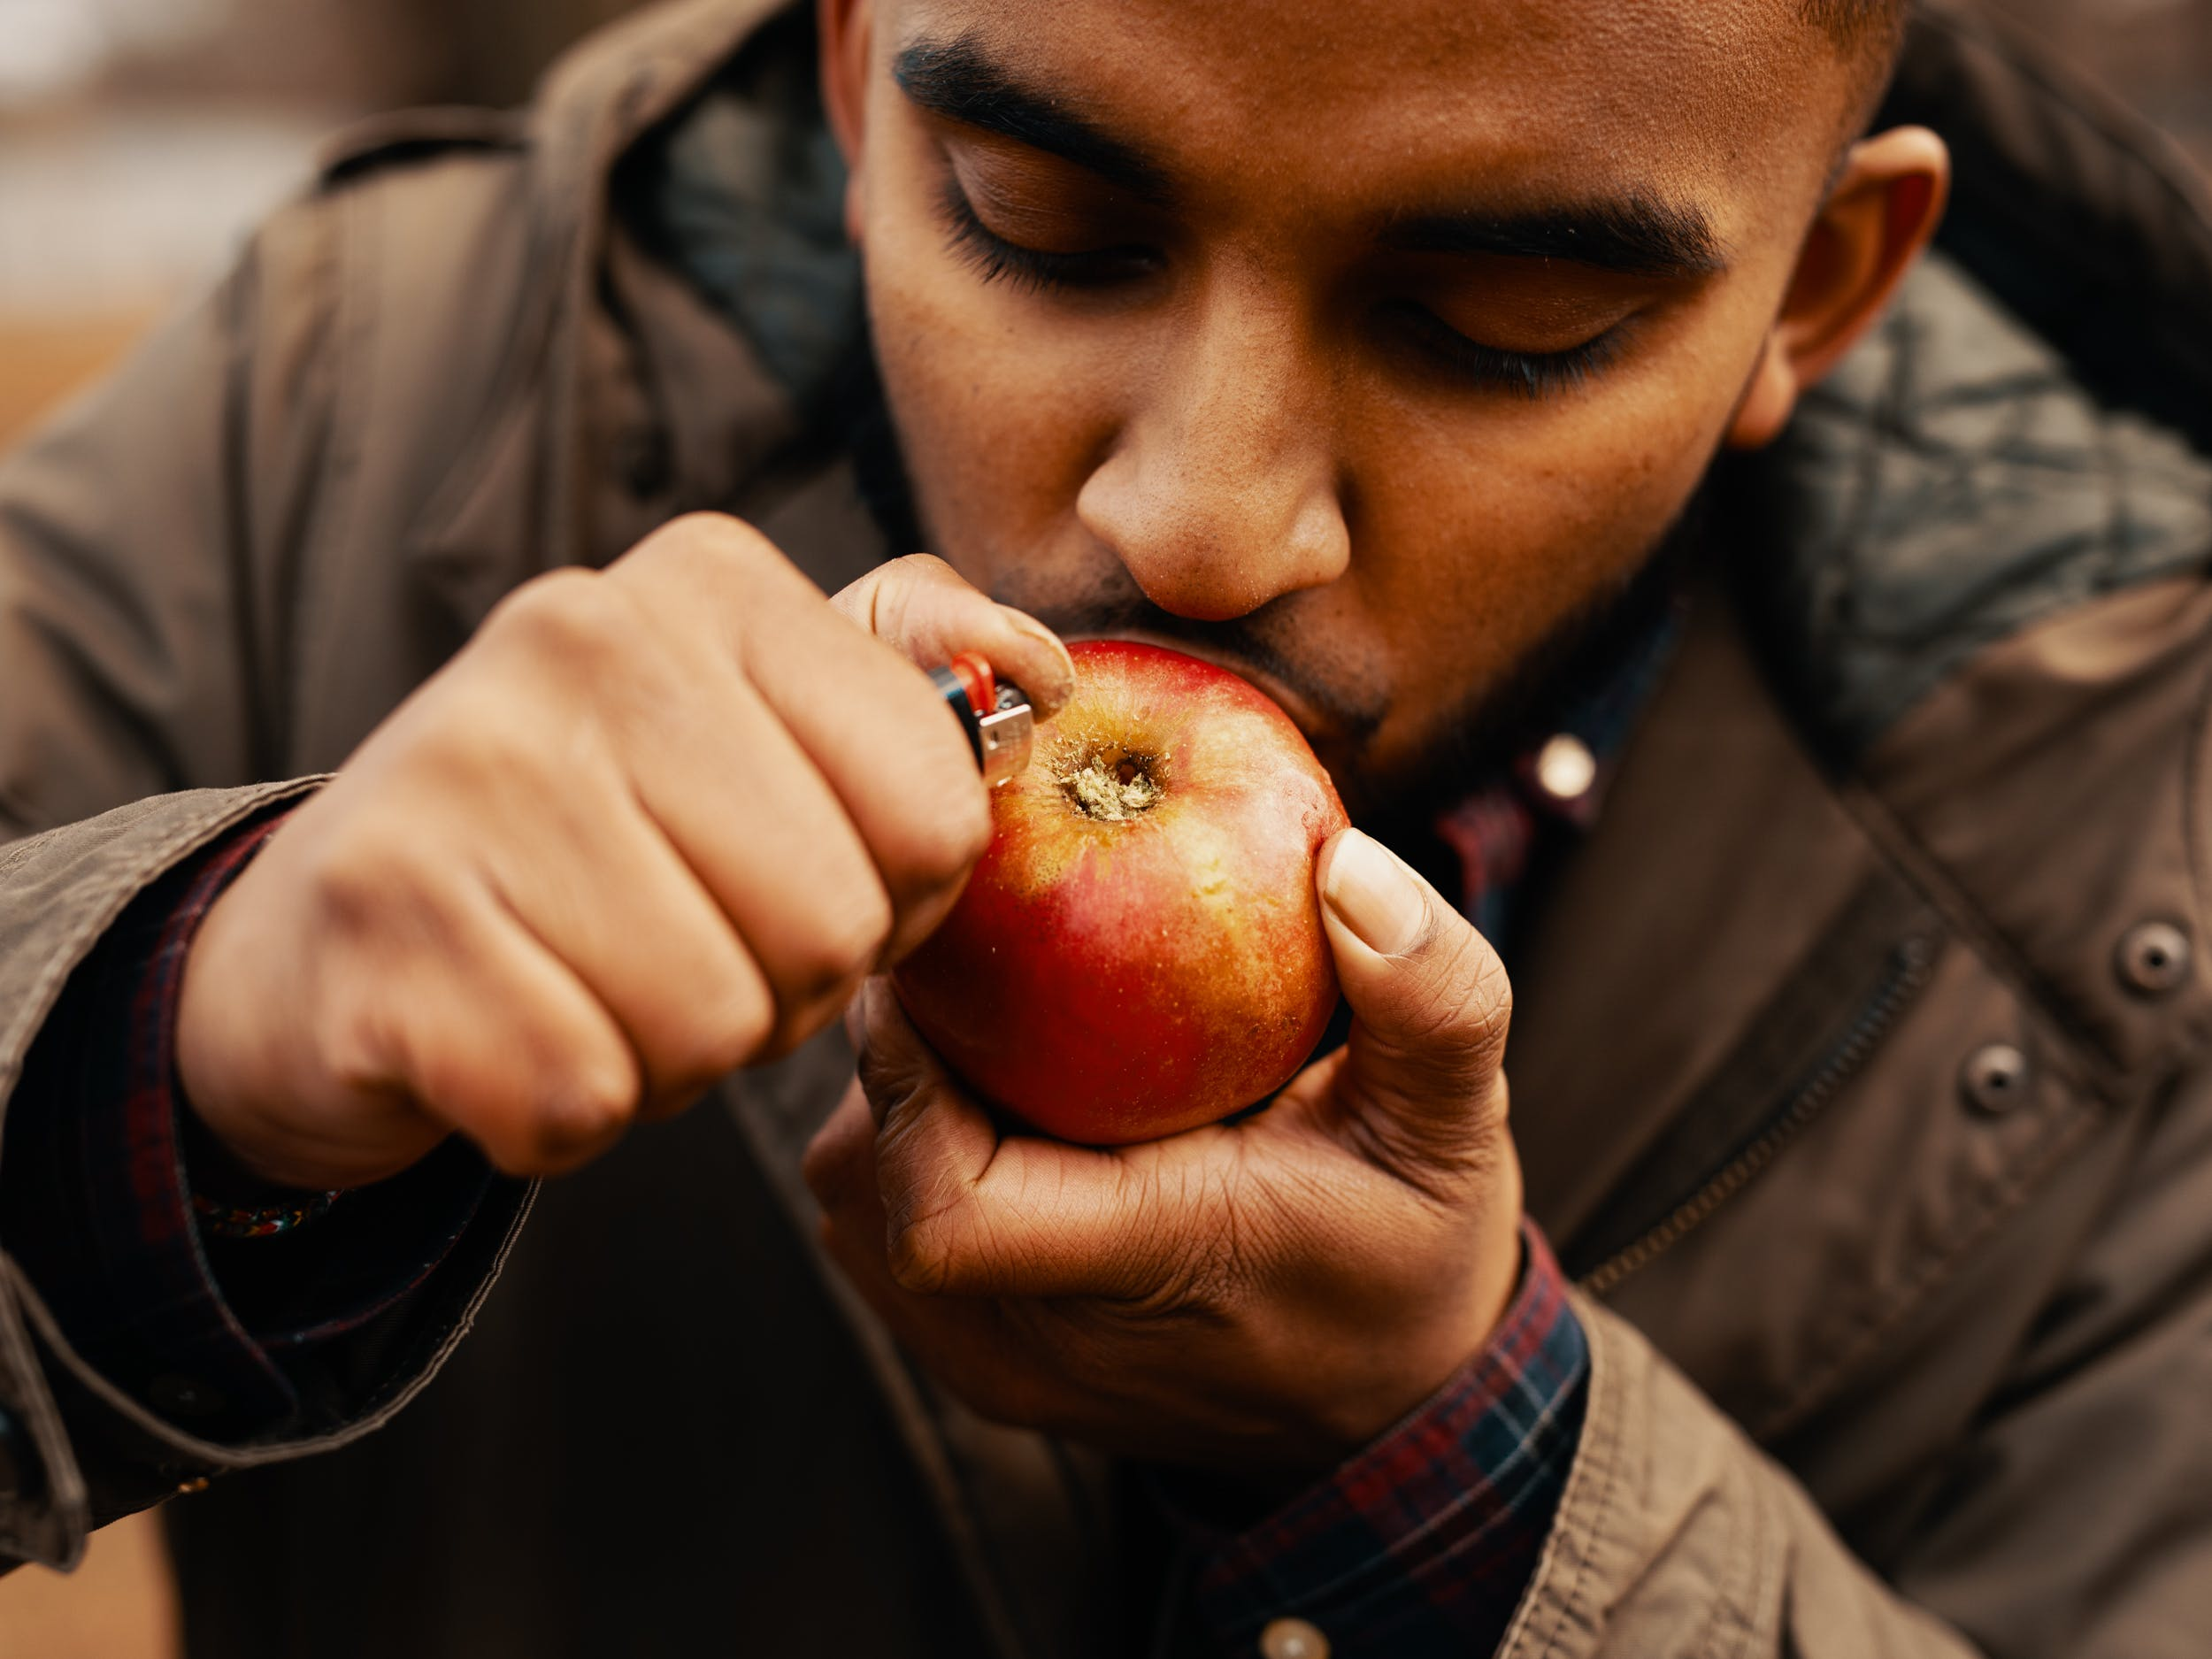 How to Make an Apple Pipe 1 No Pipe? No Paper? No Problem: Heres How To Make An Apple Pipe